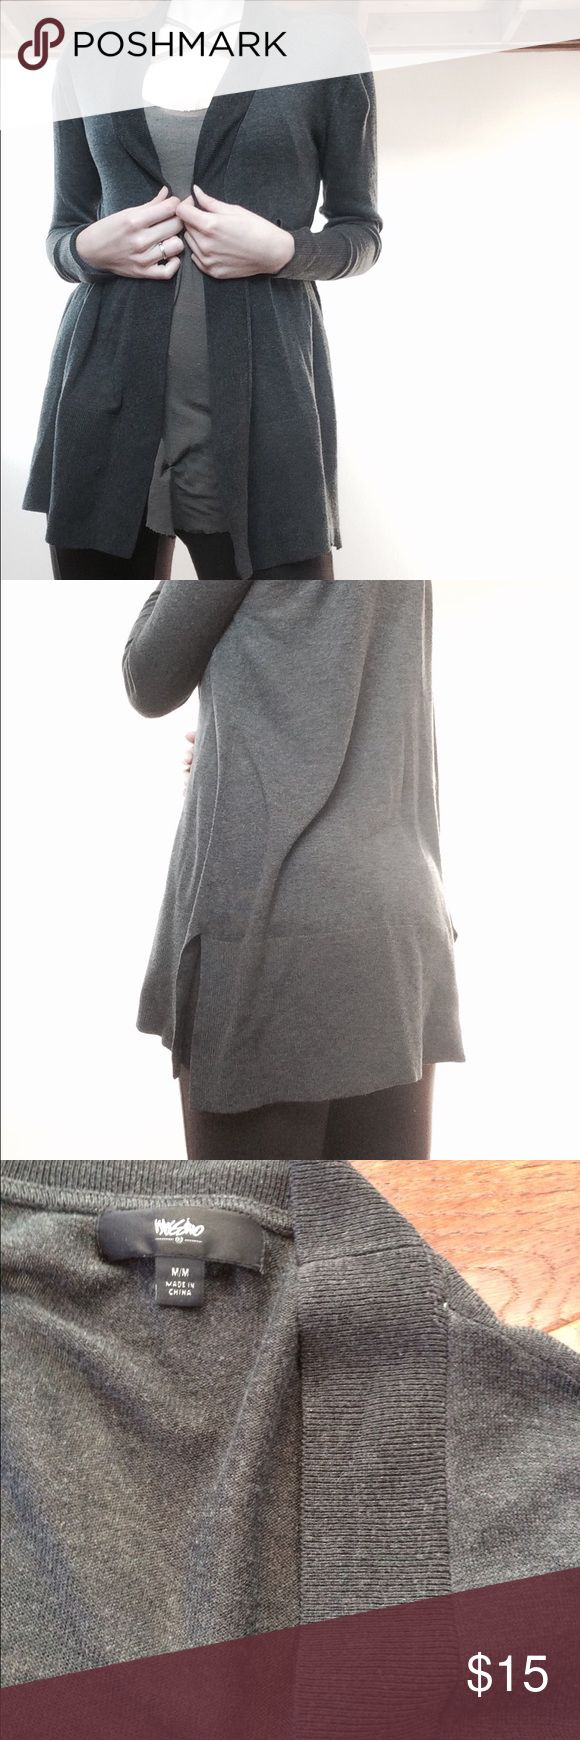 Charcoal oversized cardigan Really comfy oversized cardigan. Easy to wrap up in and be cozy or throw on for a more put together look. Massimo Sweaters Cardigans